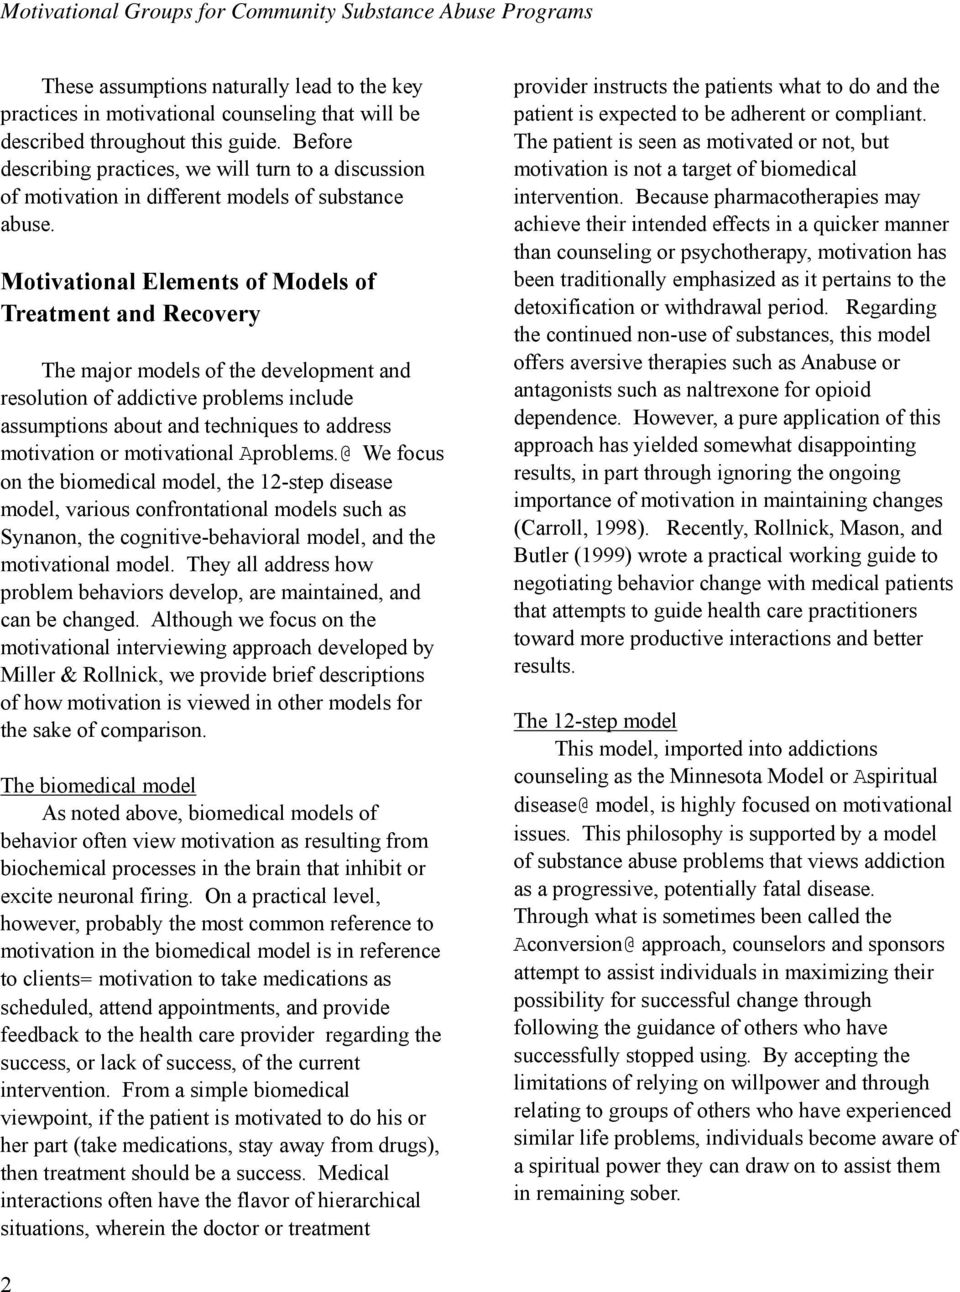 Motivational Elements of Models of Treatment and Recovery The major models of the development and resolution of addictive problems include assumptions about and techniques to address motivation or